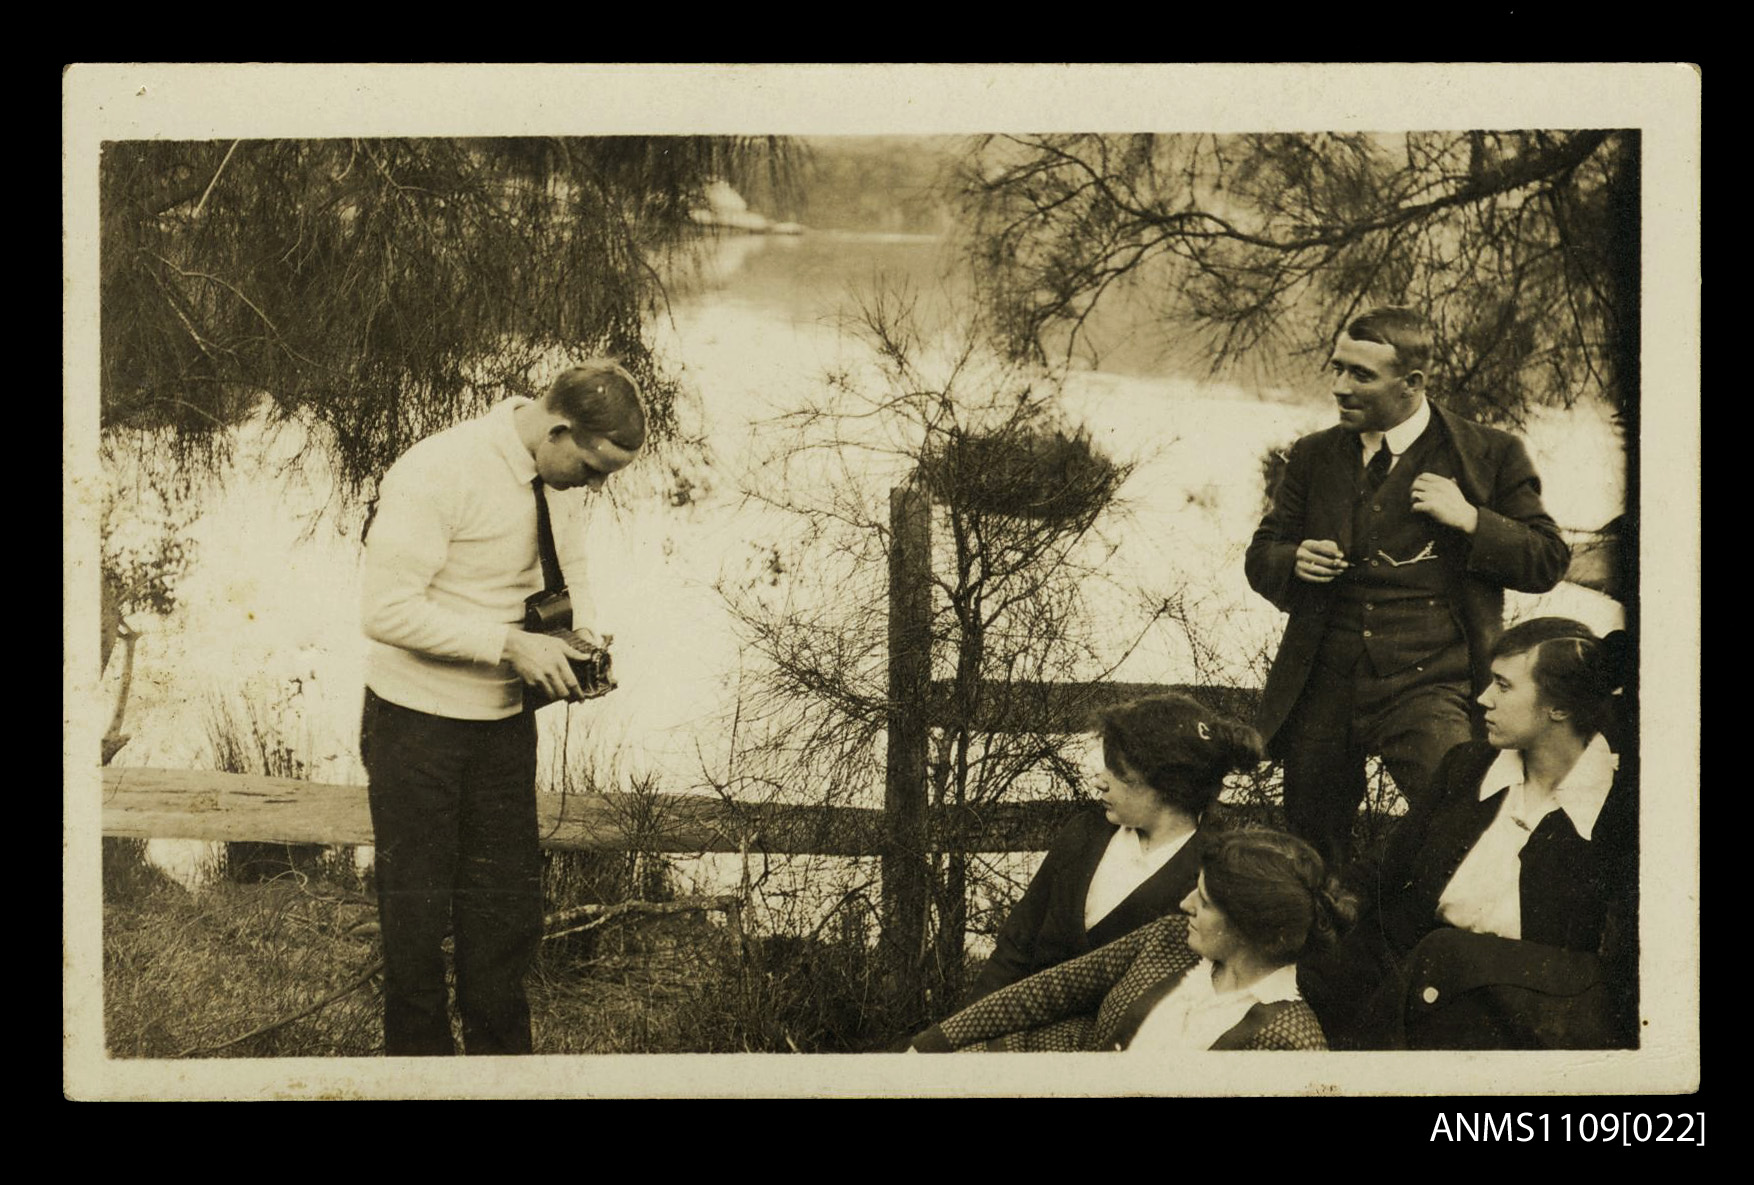 Photographic portrait postcard of a young man taking a photograph of a group